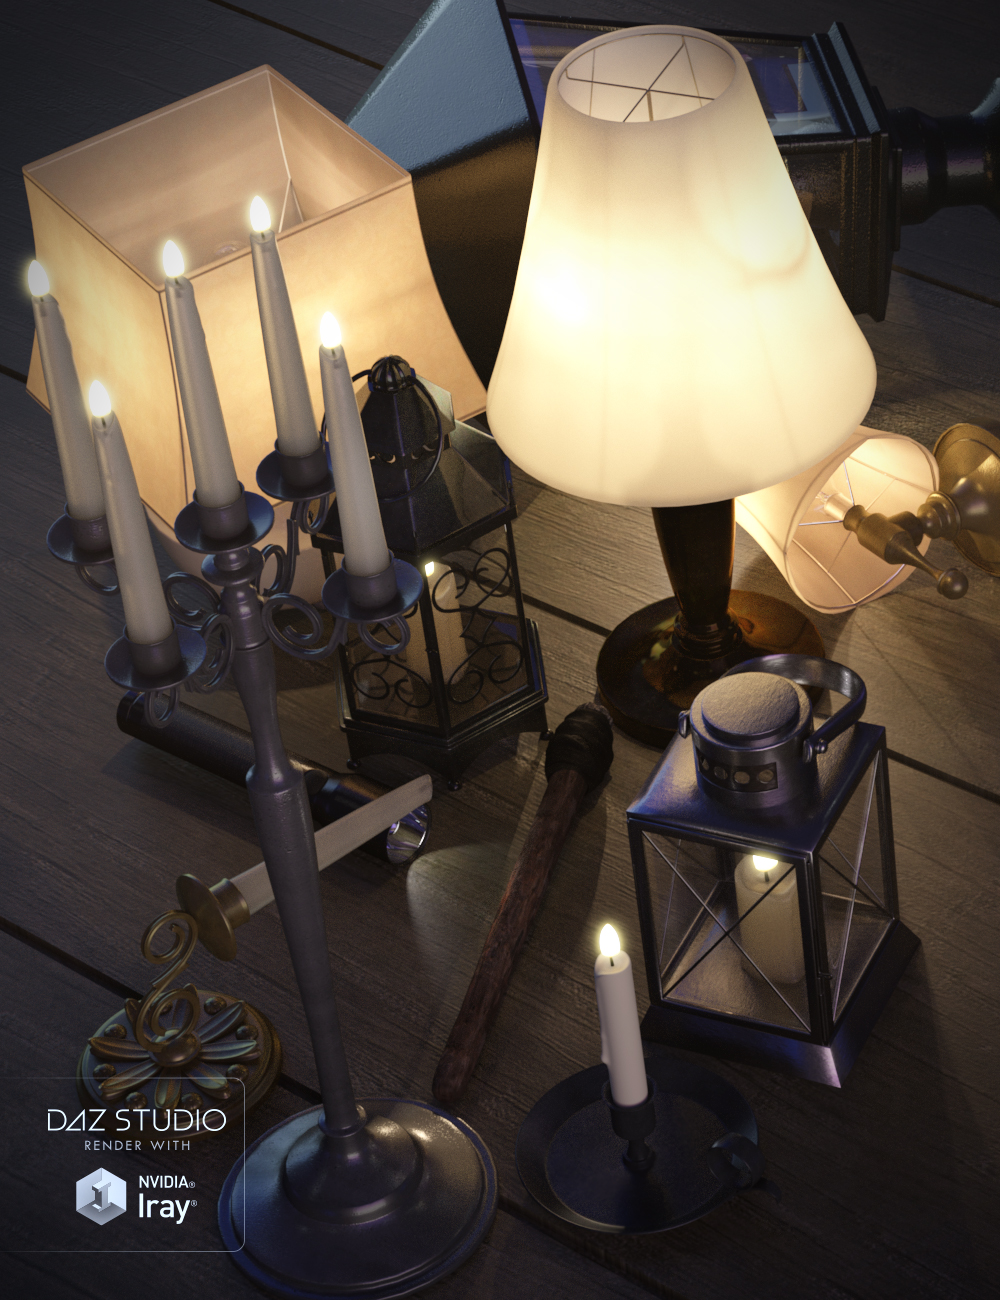 Lighting Collection Prop Set by: Porsimo, 3D Models by Daz 3D